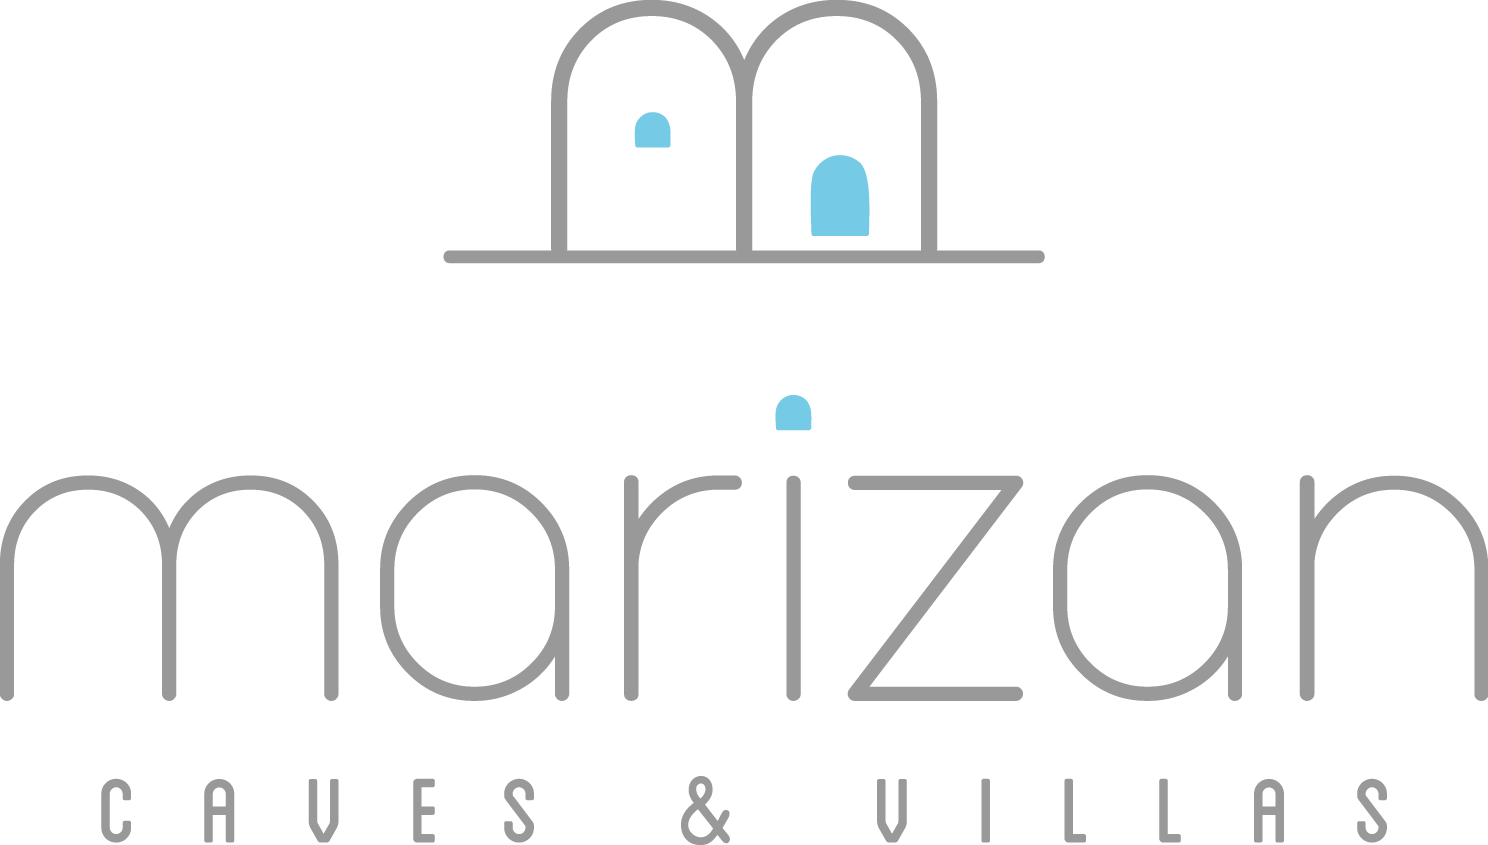 Hotel Management Software Clients - Marizan Caves & Villas